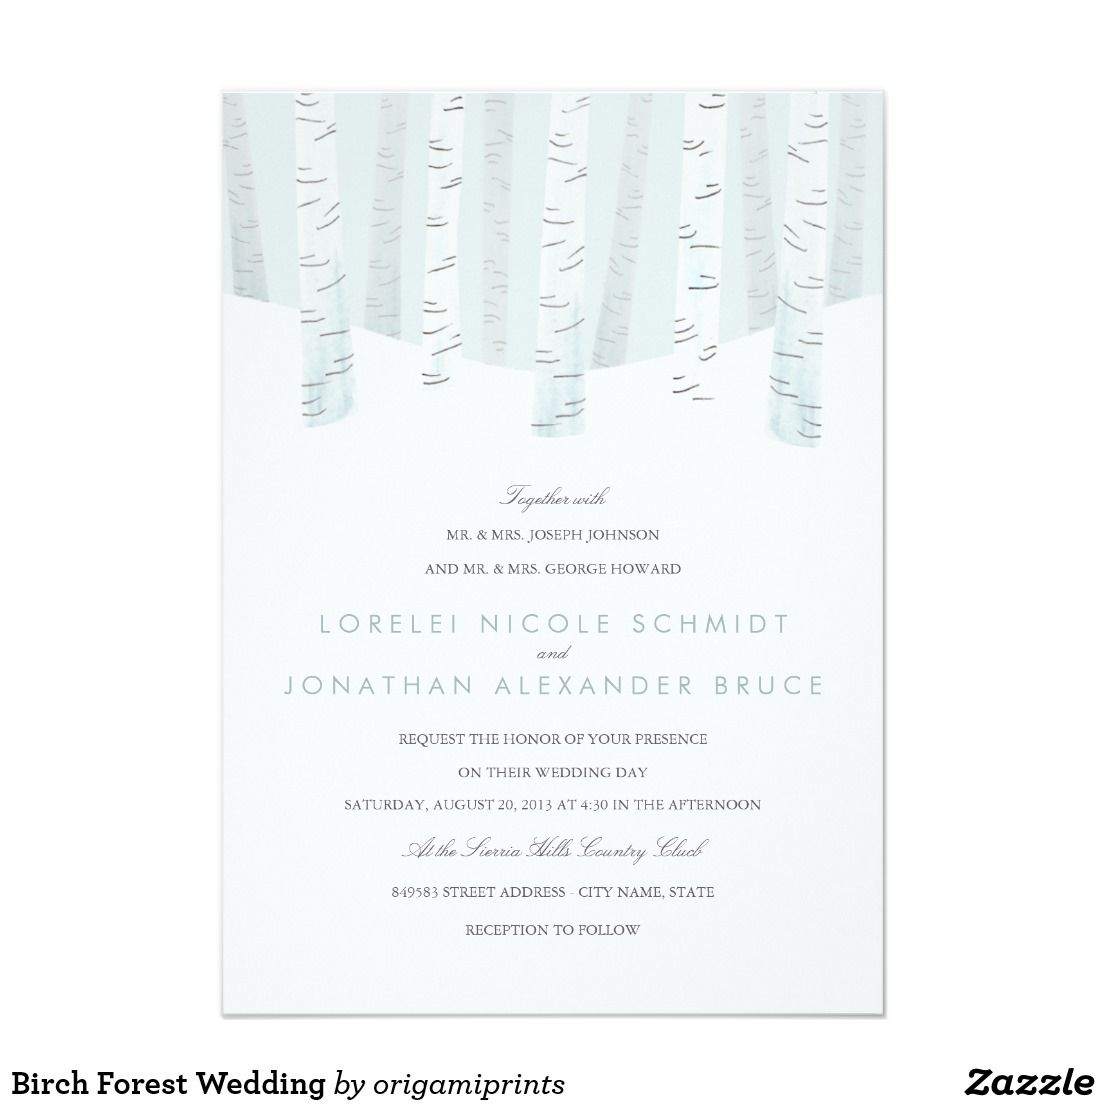 Birch Forest Wedding Card Elegant Birch Tree Forest Wedding Design